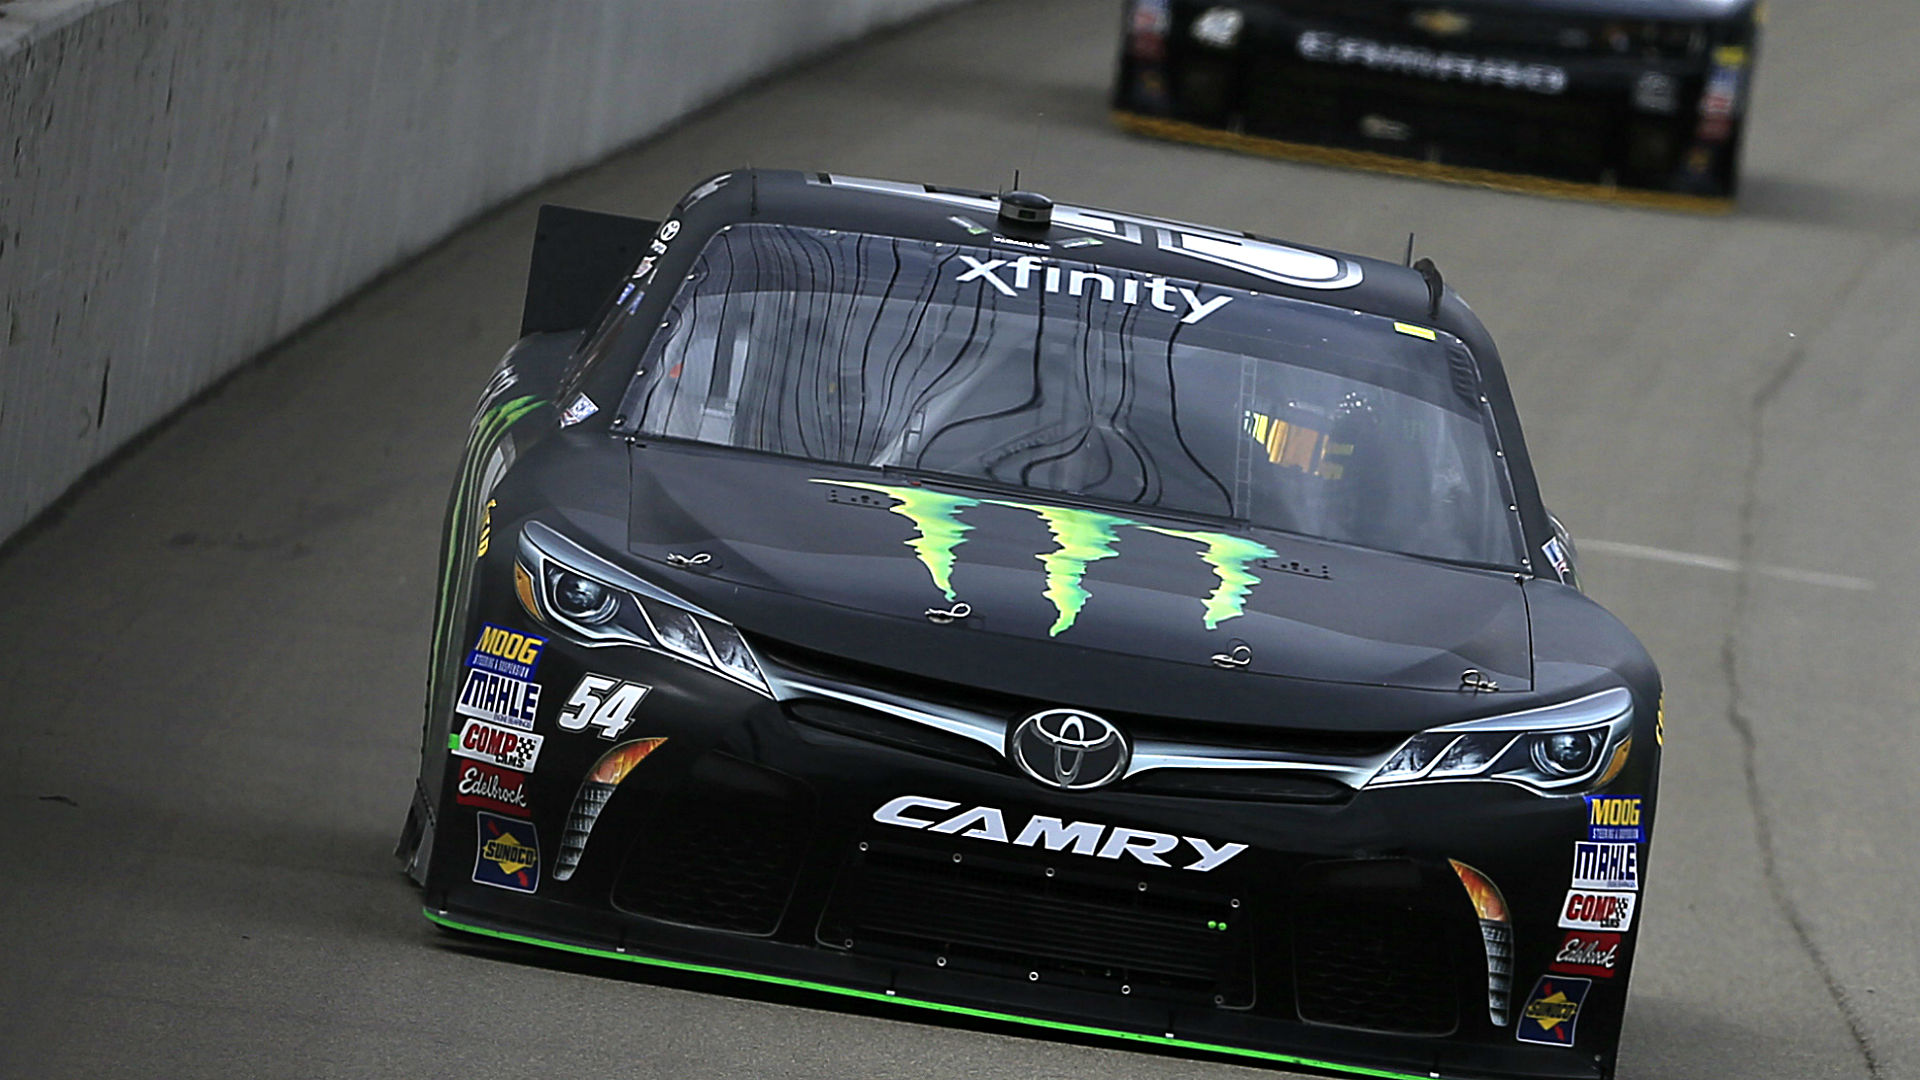 Xfinity results kyle busch makes overtime pass to win at bristol nascar sporting news